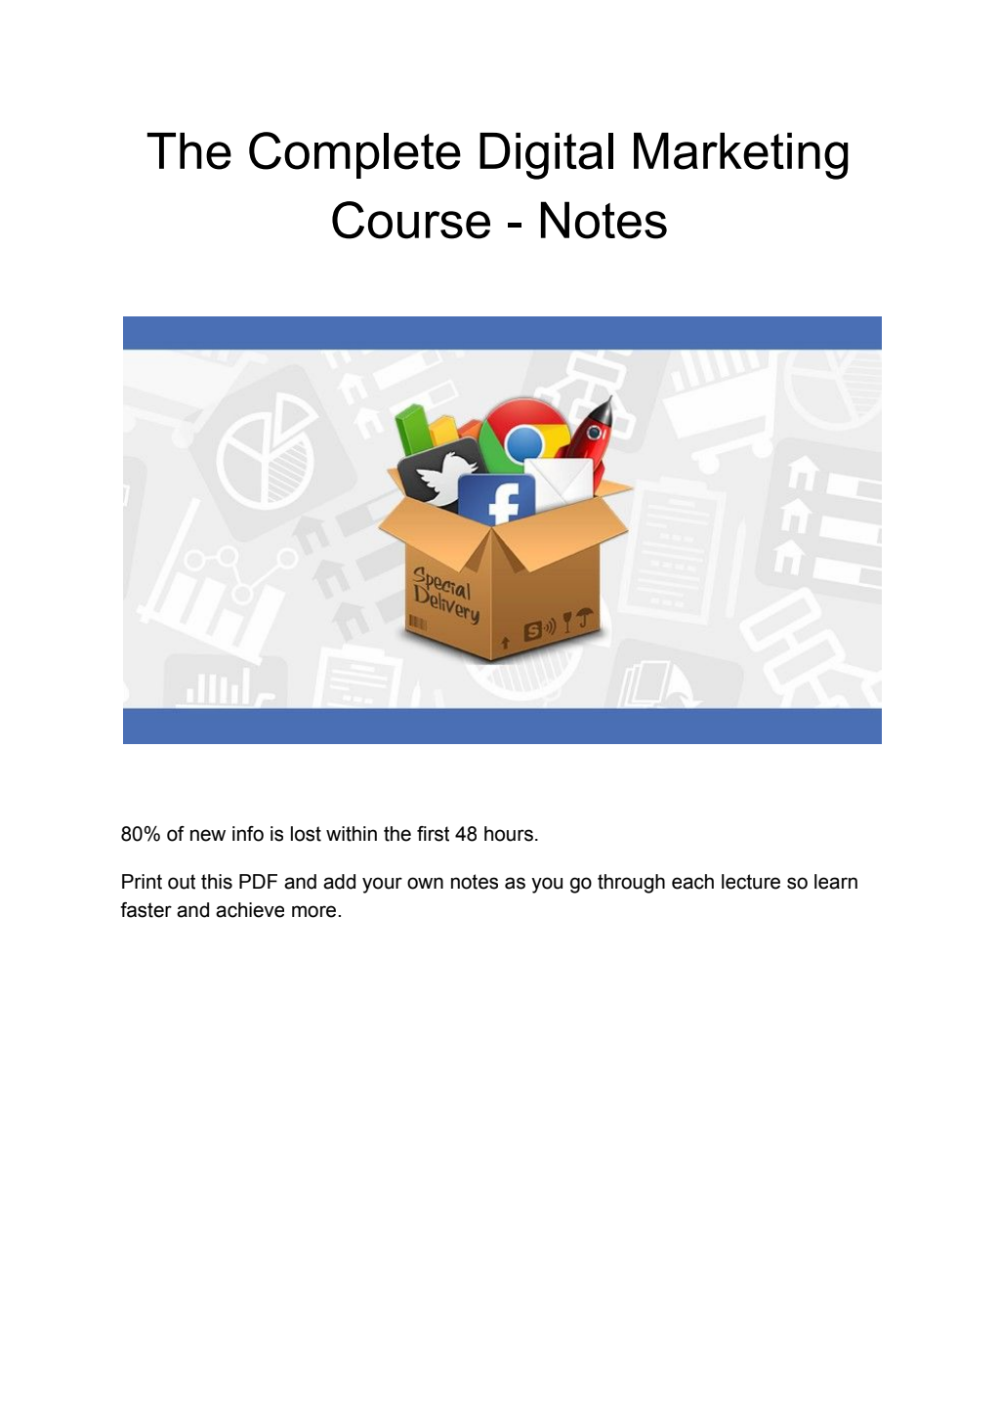 Rhyme's acquisition cost, andrew ng's deeplearning.ai revenue, no. Notes - Complete Digital Marketing Course.pdf - Google ...